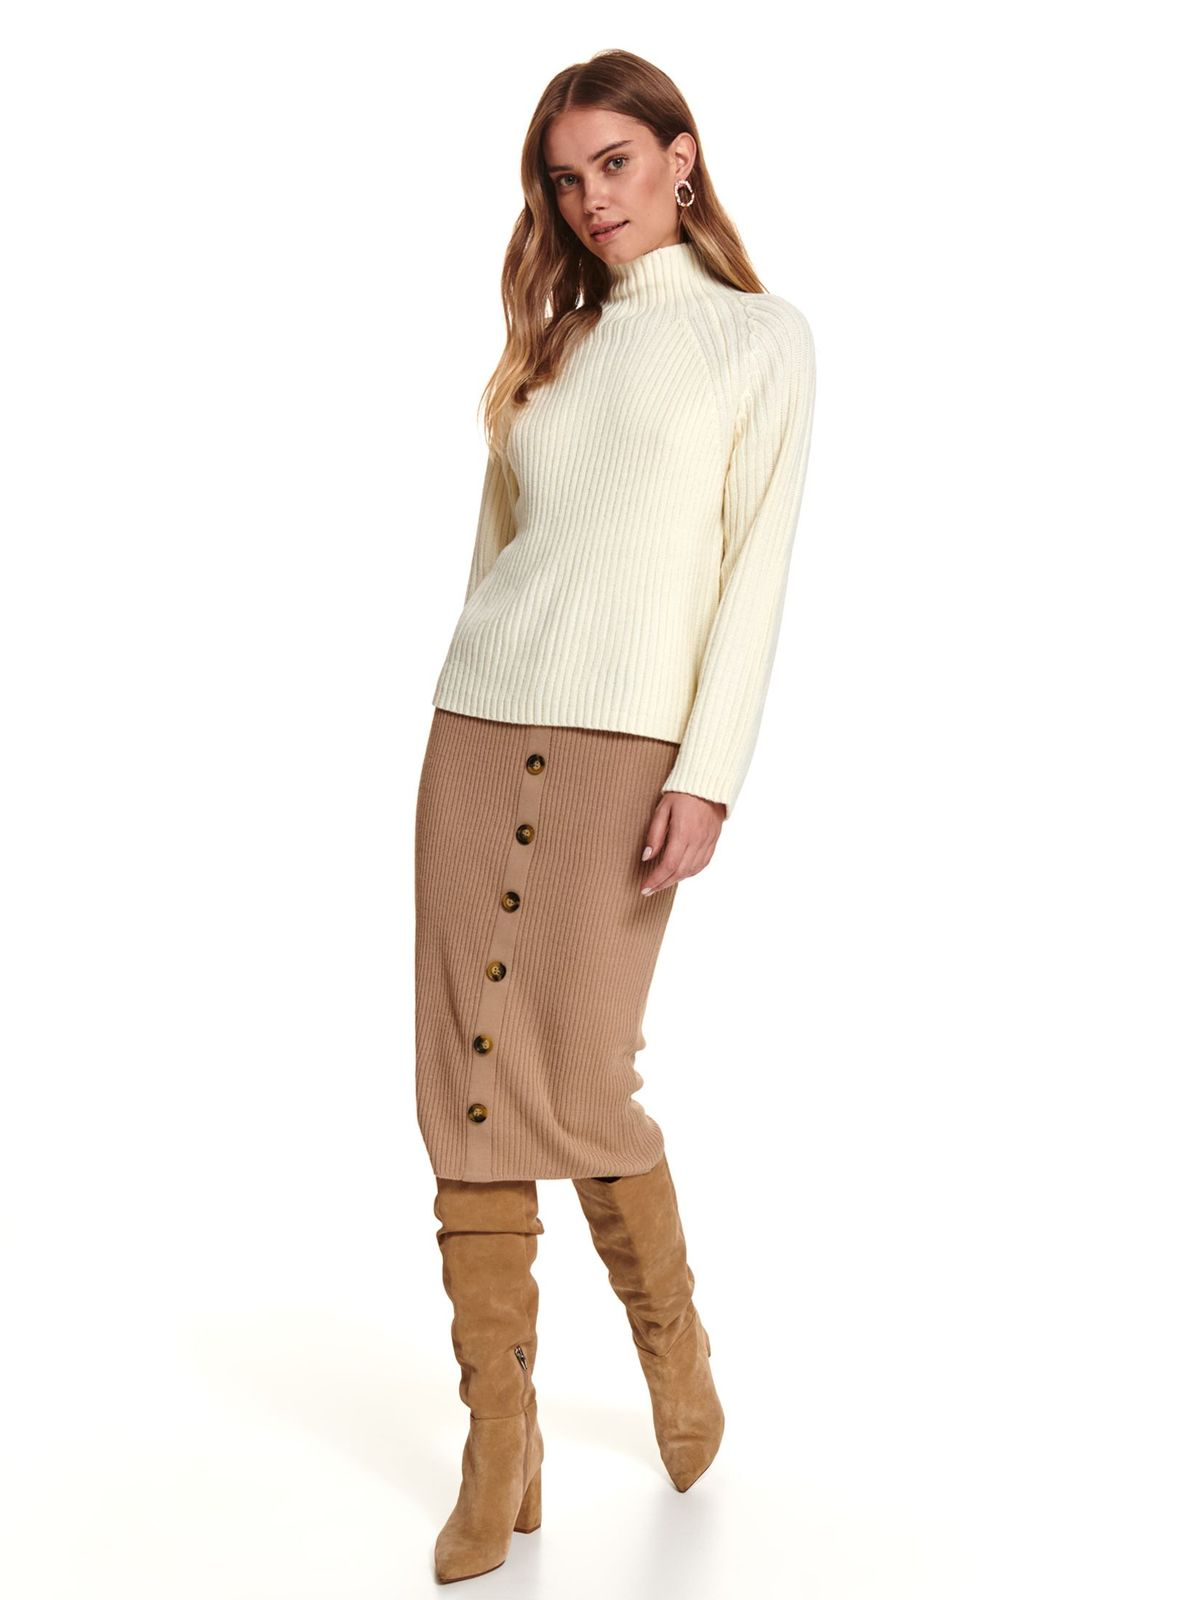 Peach sweater casual knitted fabric